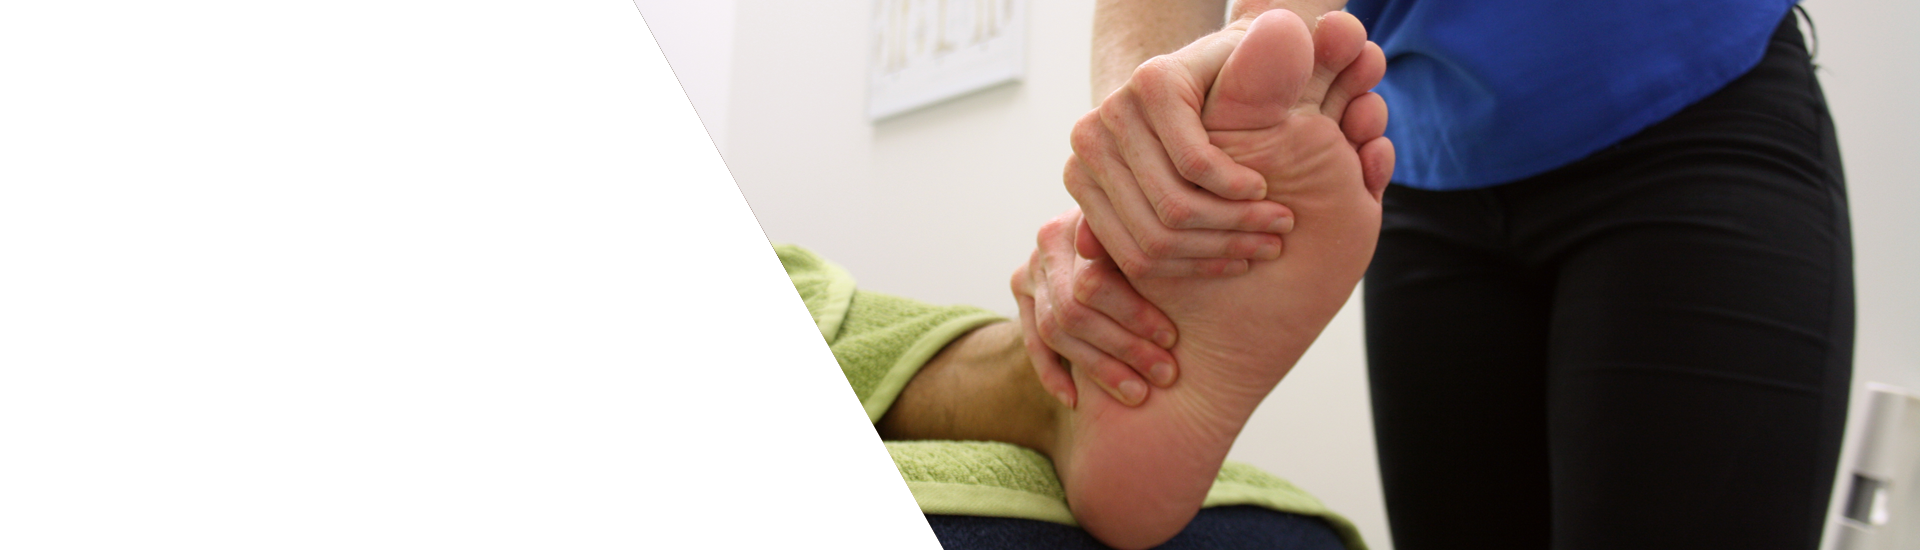 banner-services-osteopathy-1